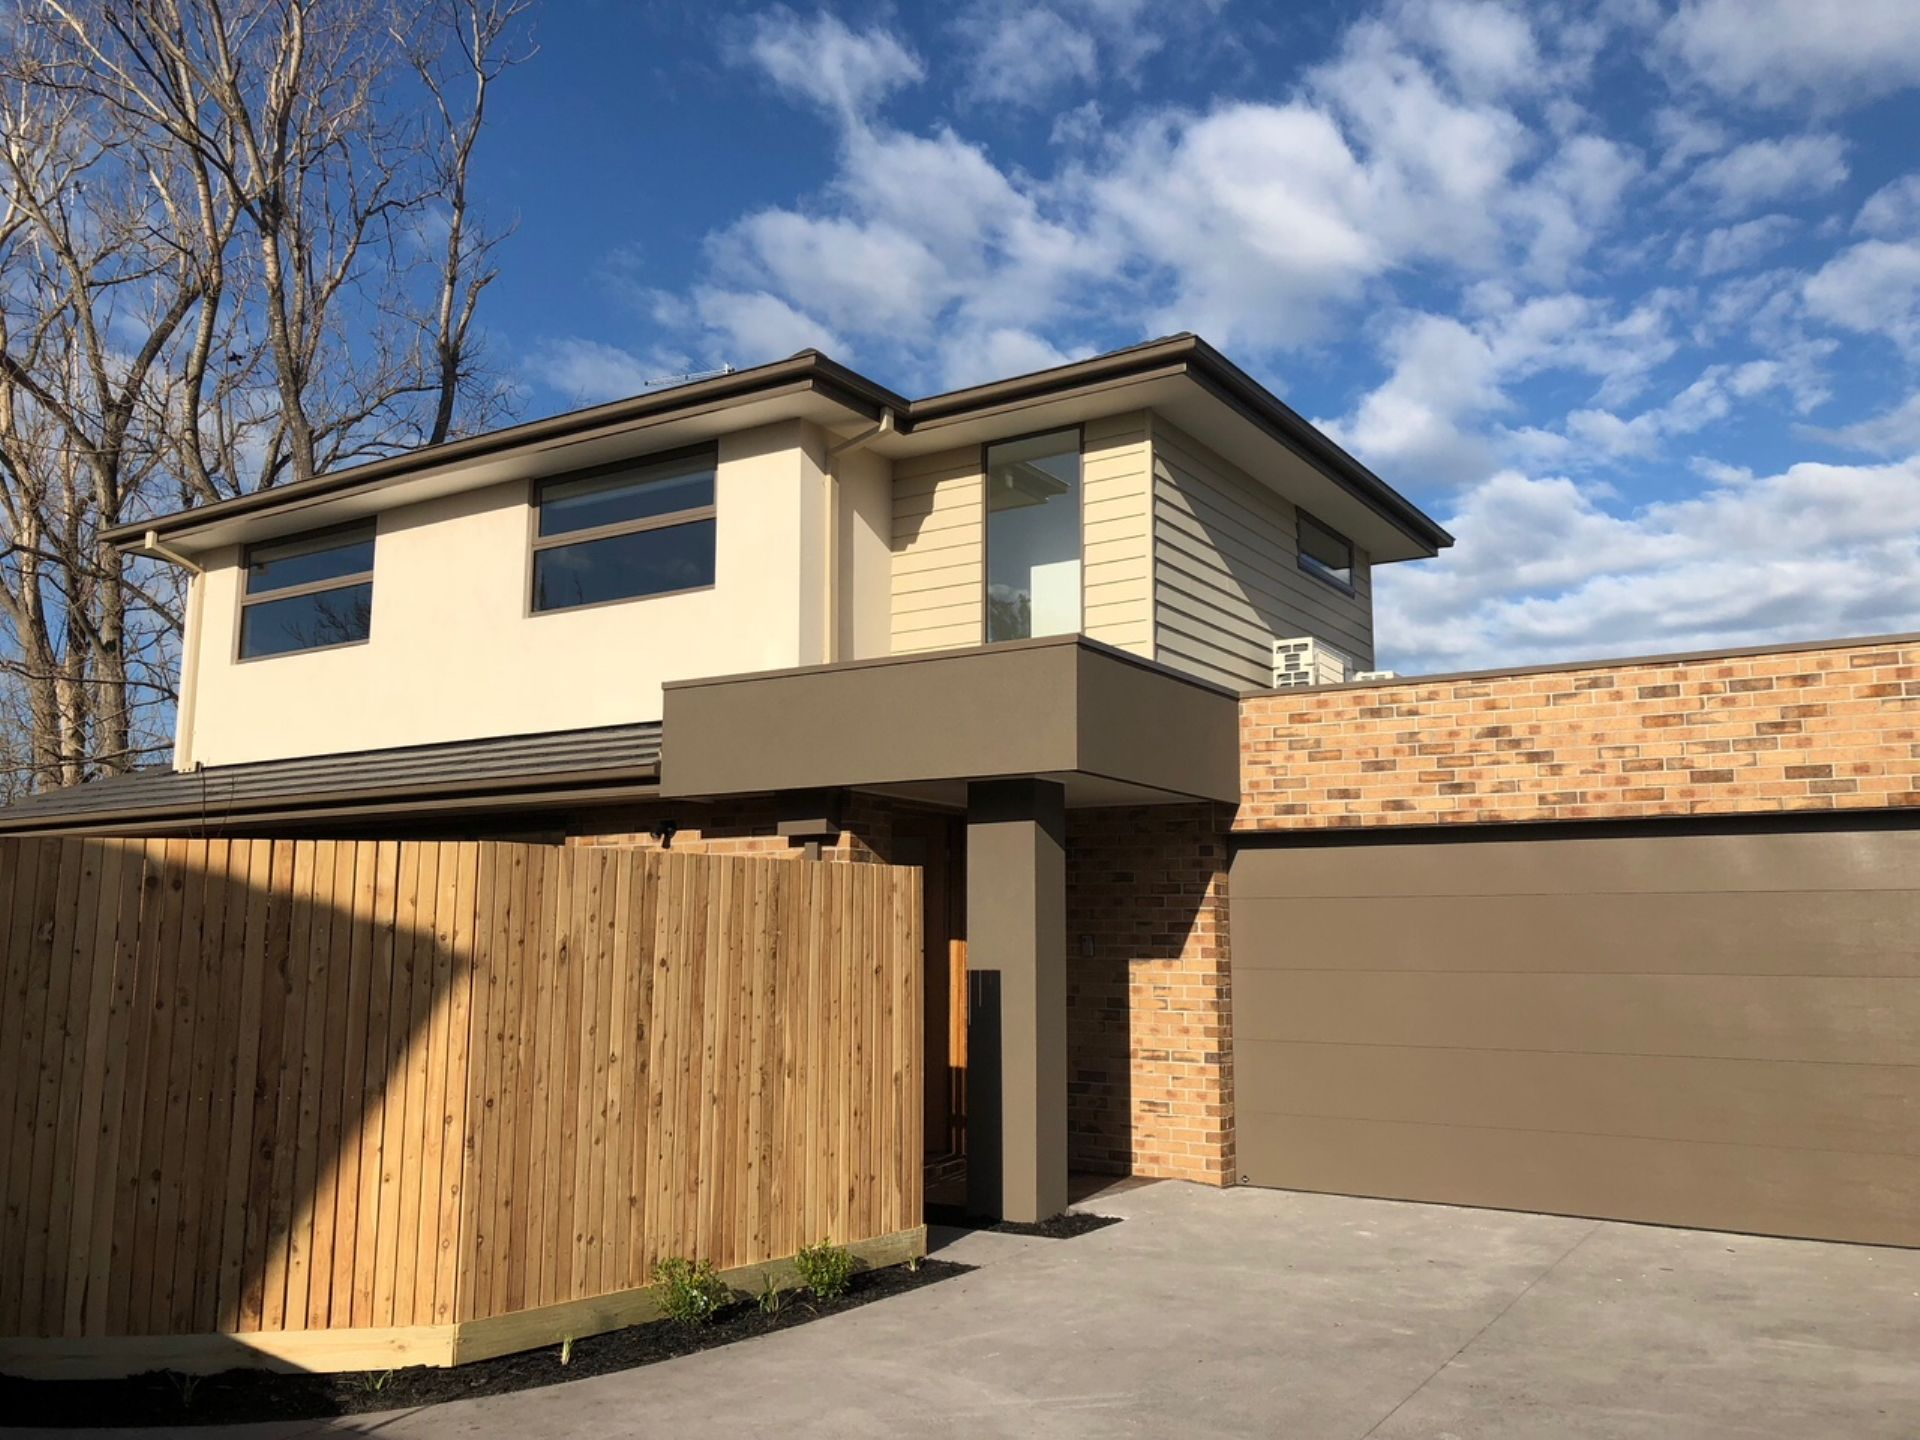 3/72 Northcliffe Road, EDITHVALE, VIC, 3196 - Image